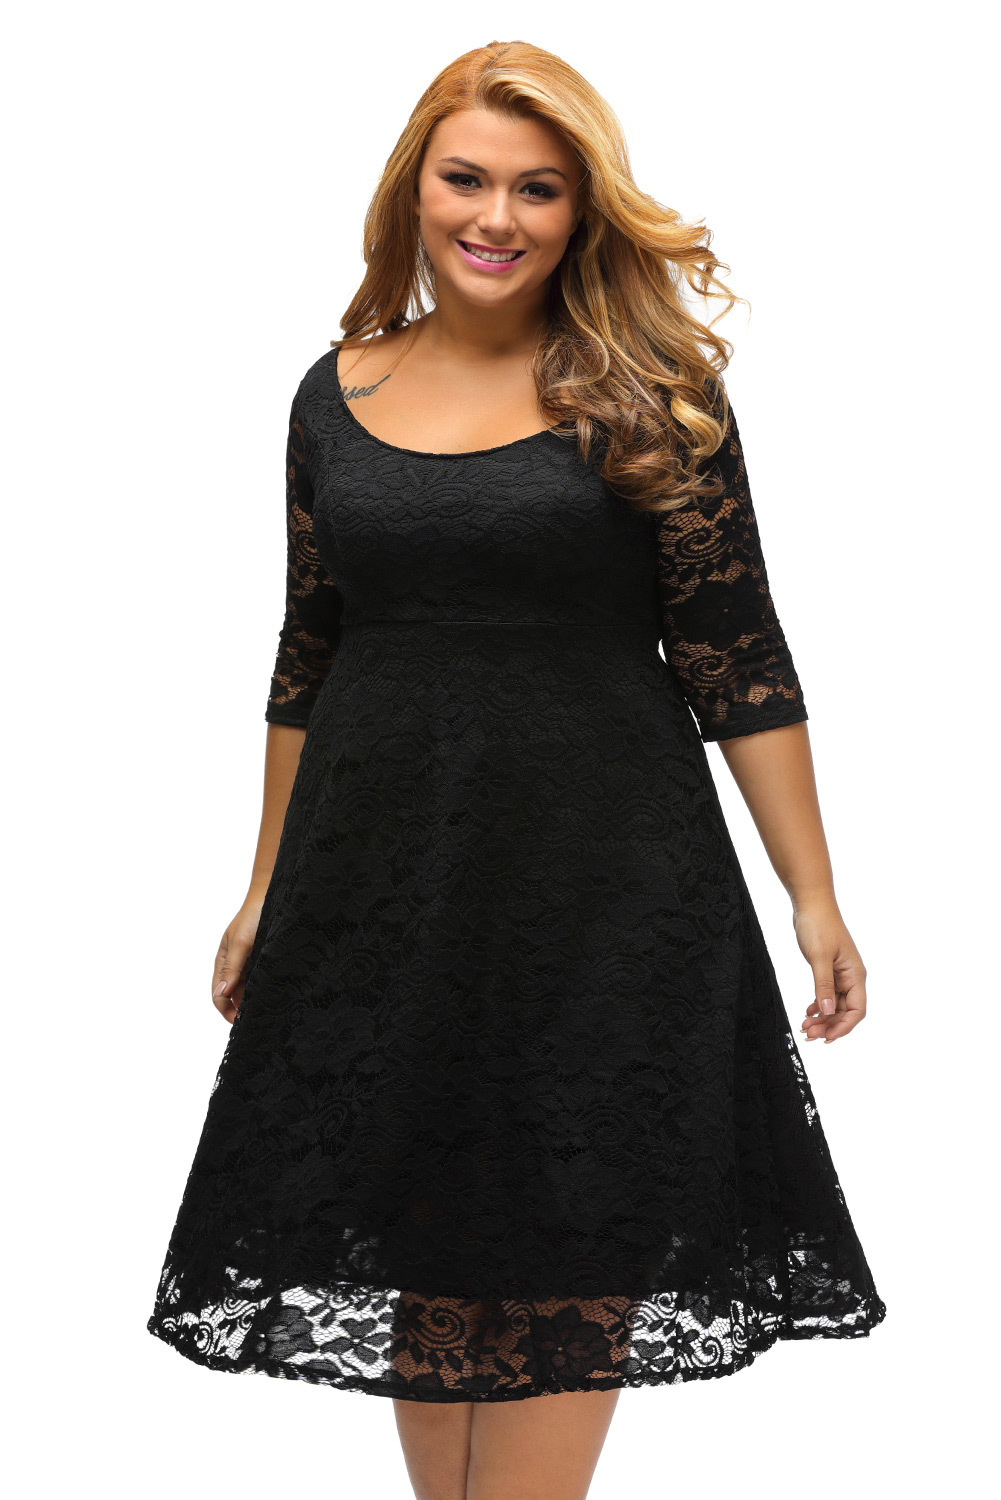 5x cheap black dresses